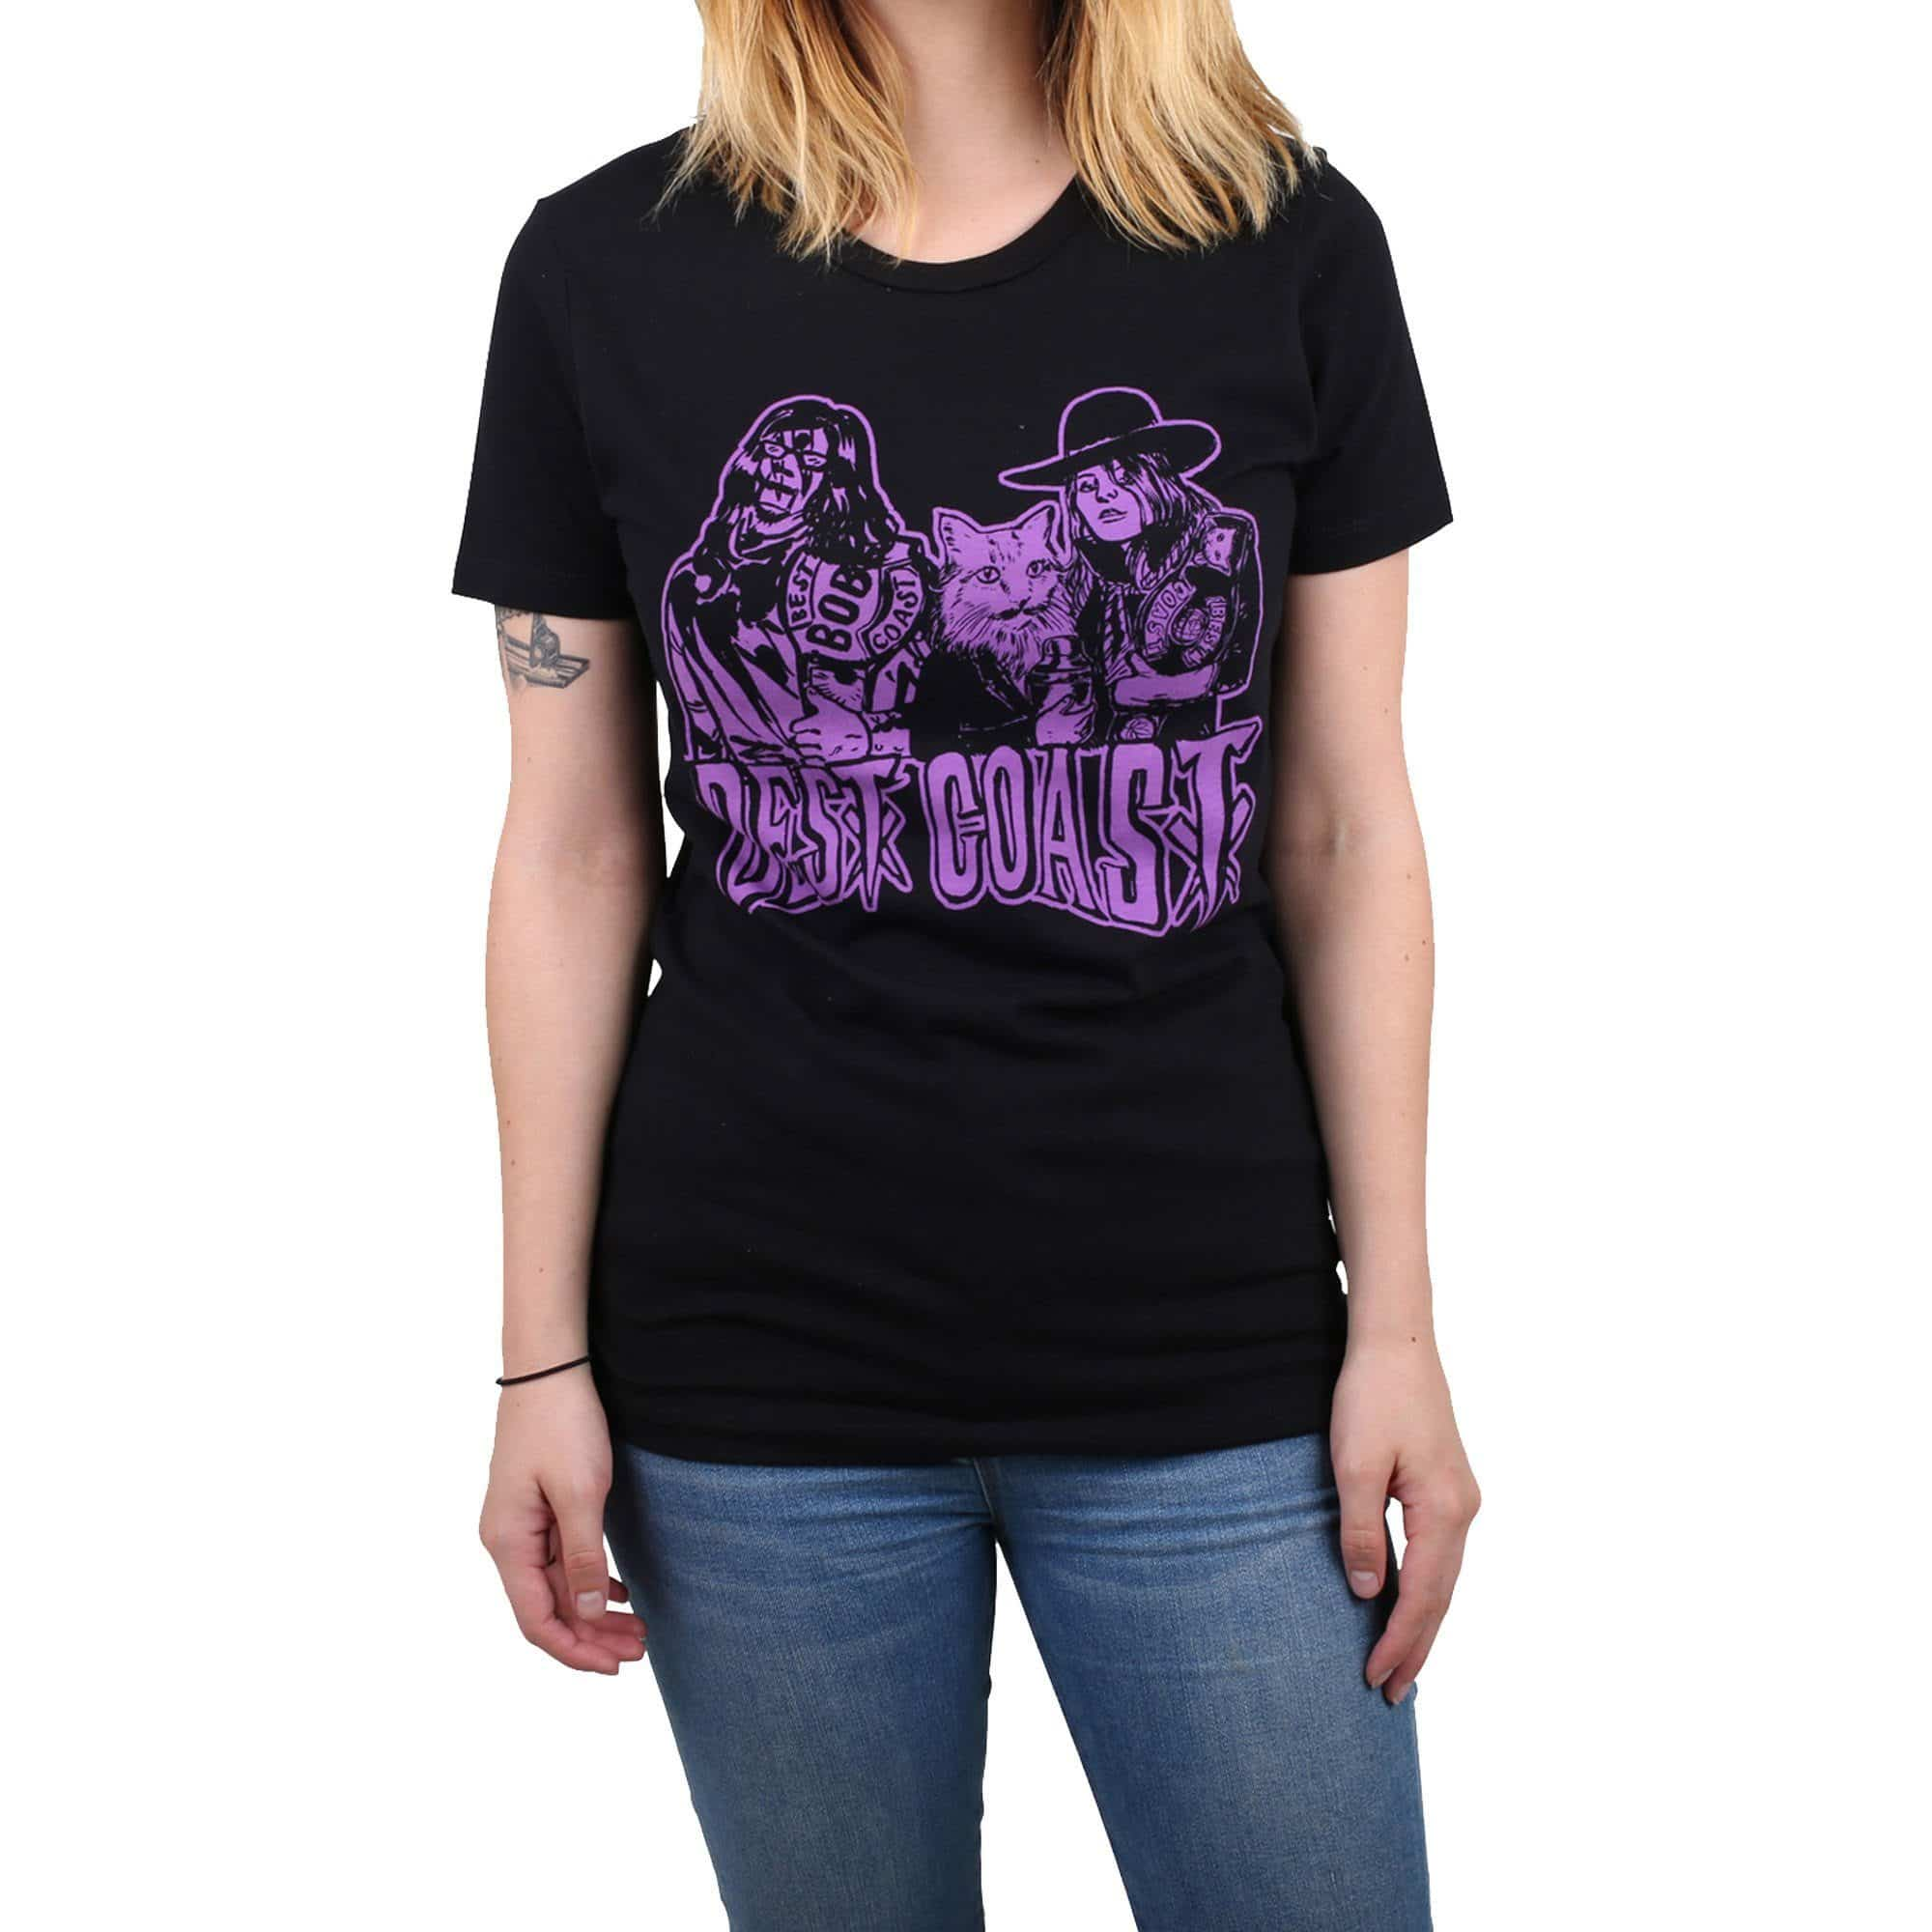 'Snacks Wrestler' Women's T-Shirt